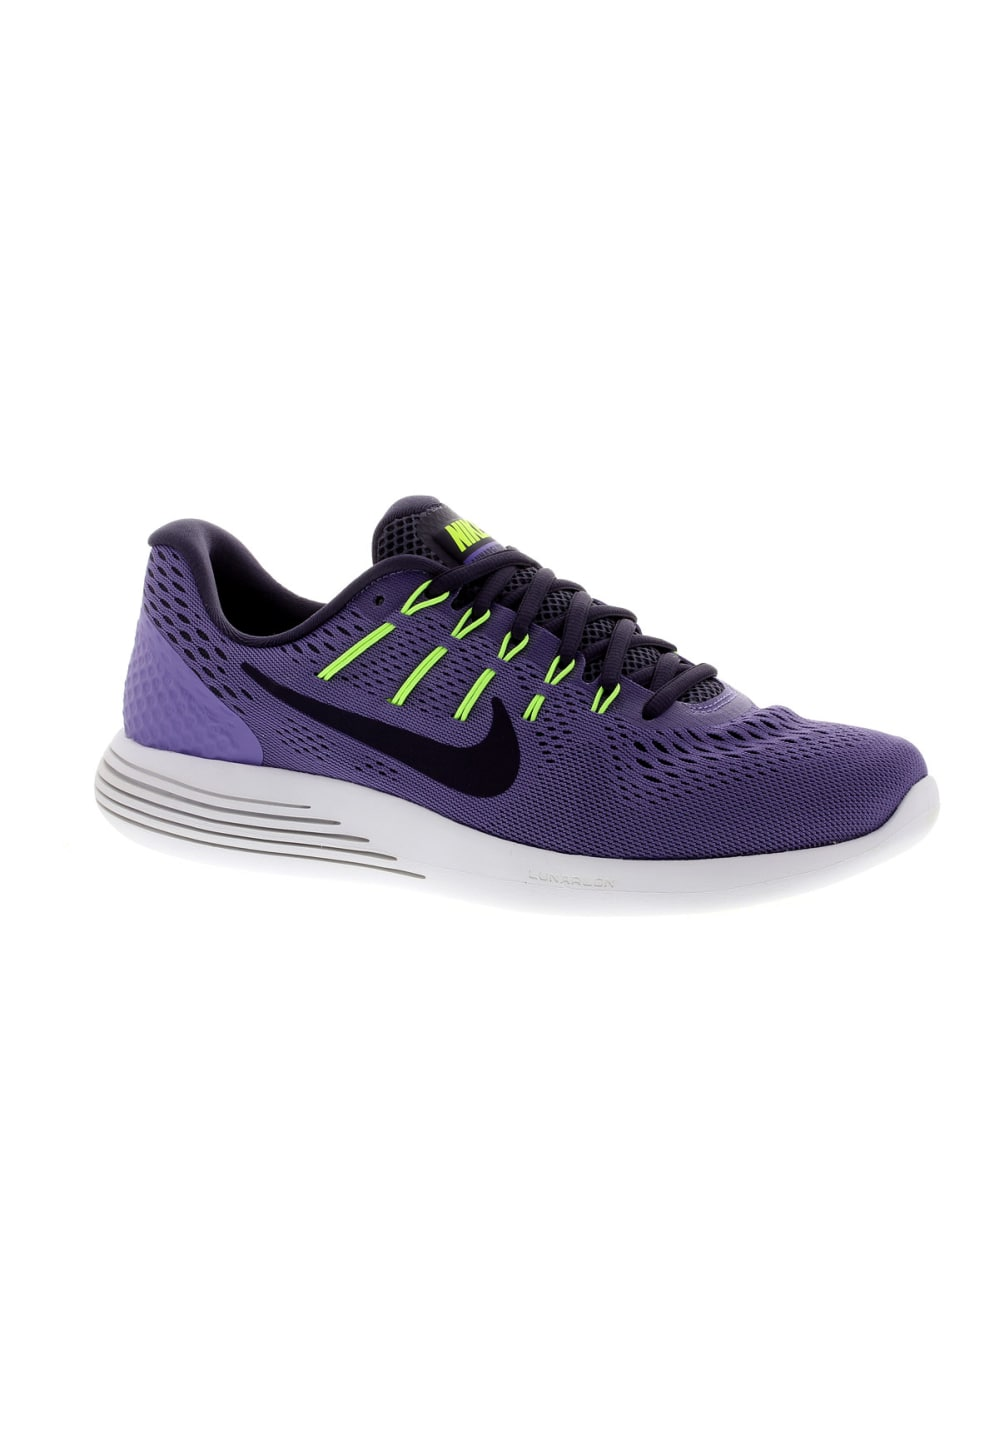 775e005f7ff8 Next. -50%. This product is currently out of stock. Nike. Lunarglide 8 - Running  shoes for Women